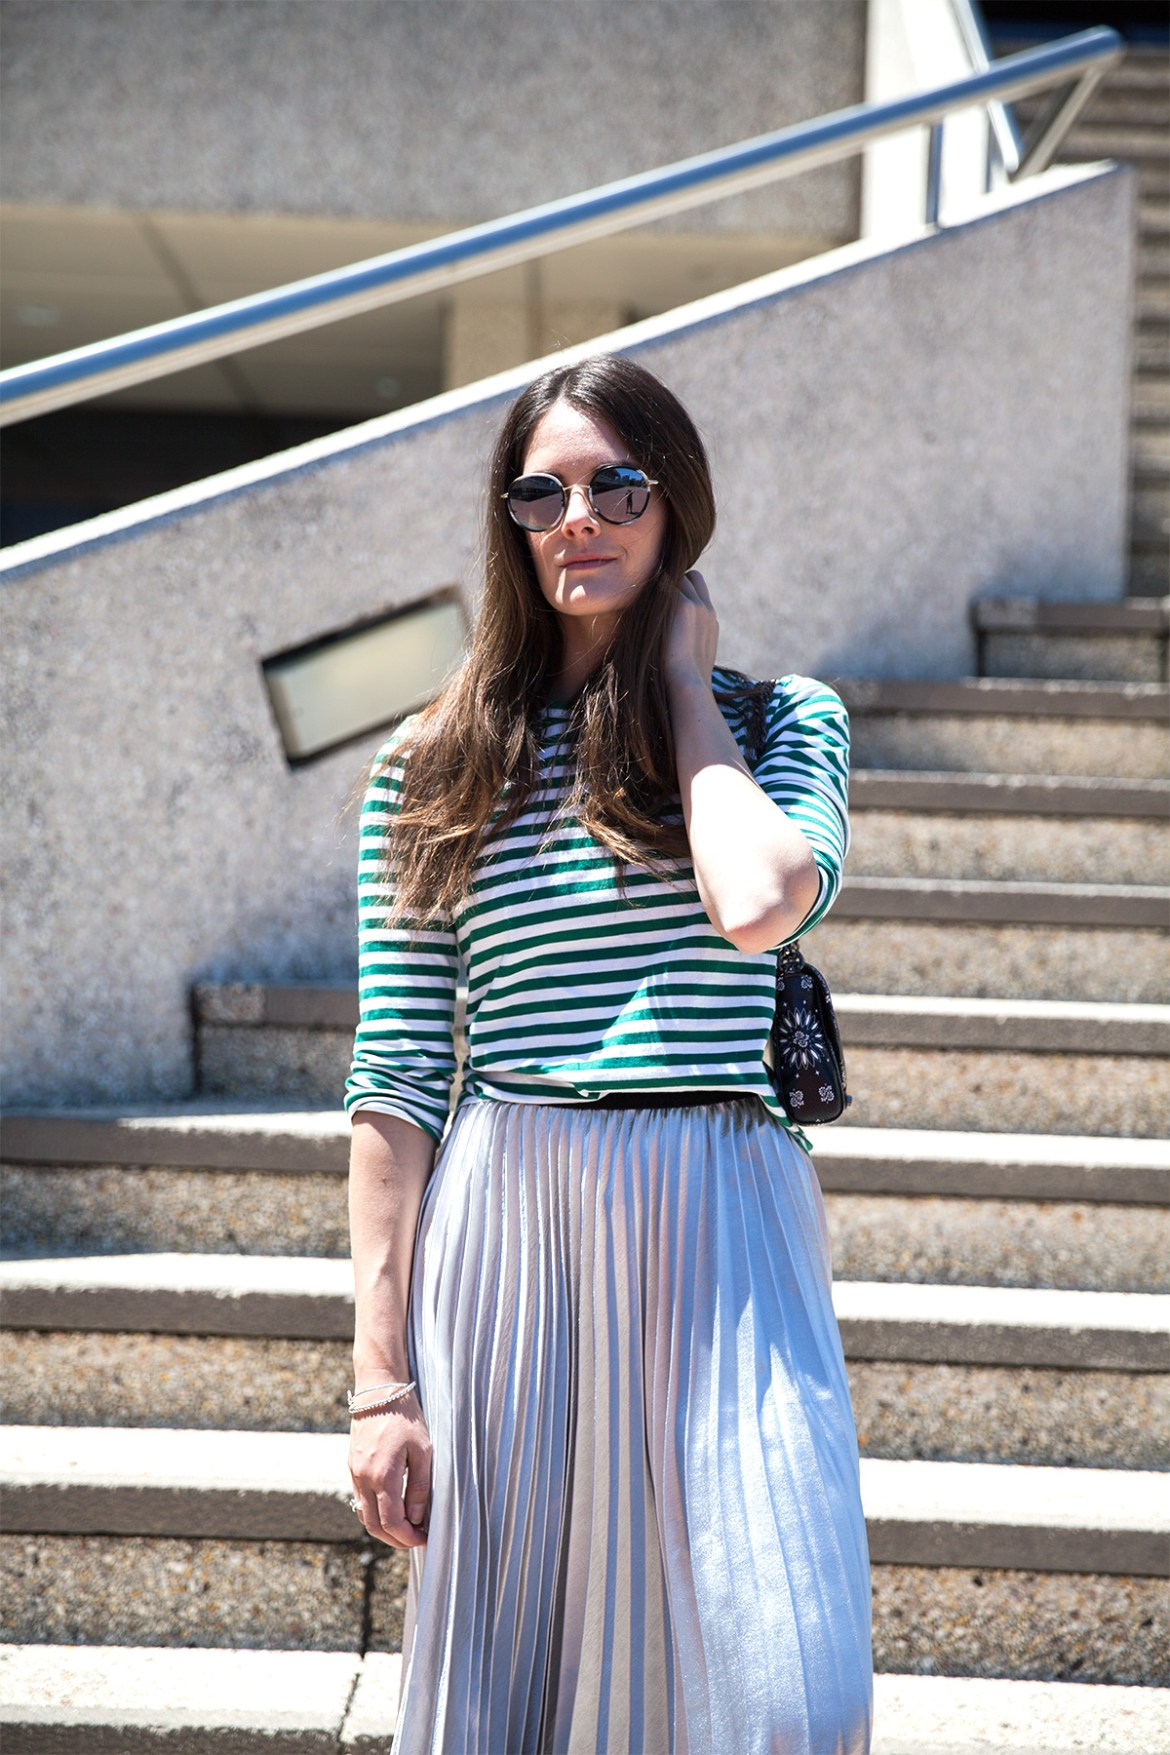 inspiring wit blog style metallic pleated skirt and stripe tee @inspiringwit #fashionblogger #streetstylefashion #ootd